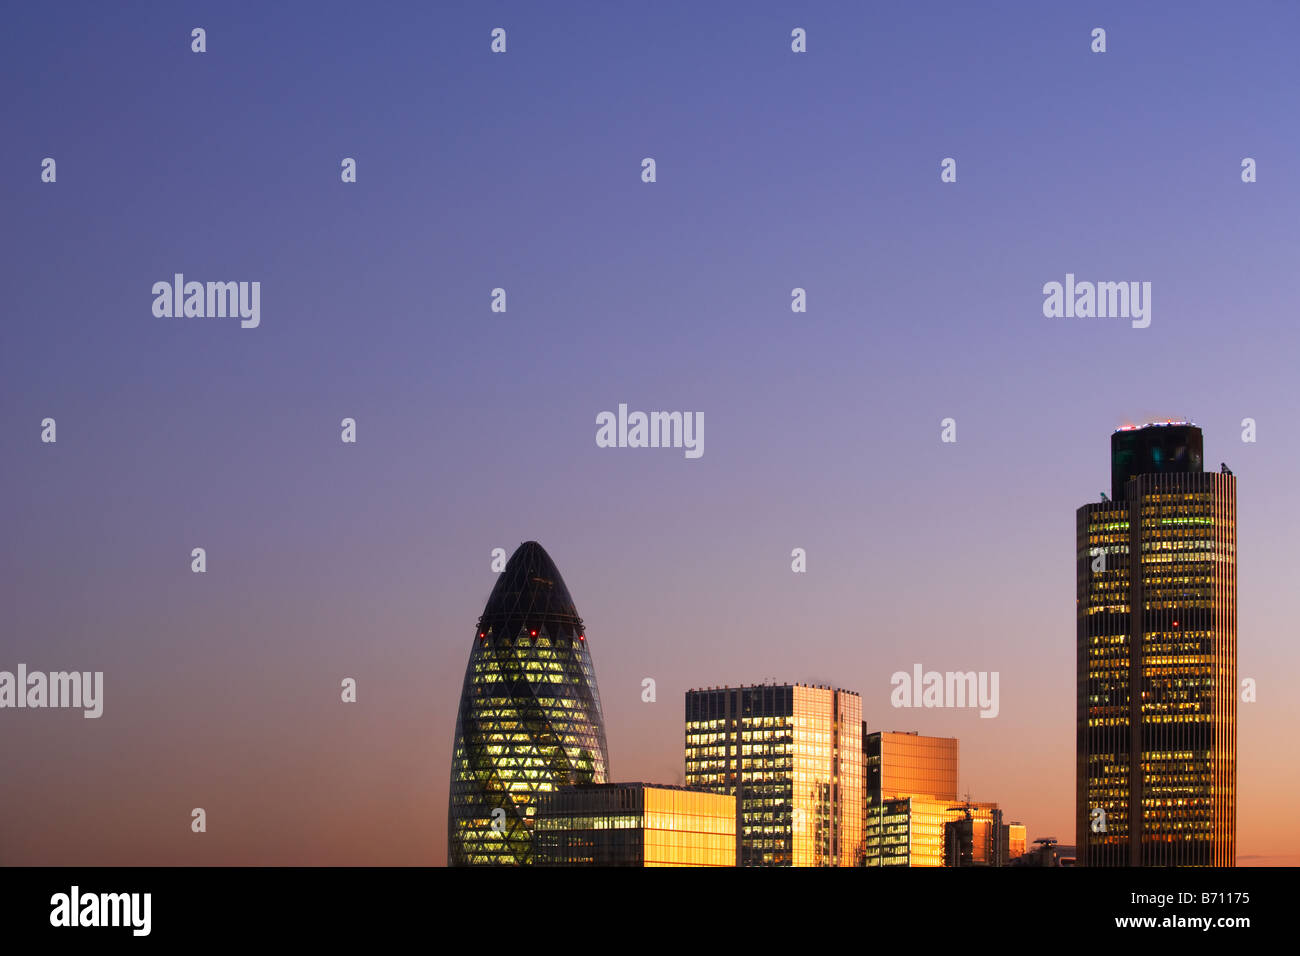 Nat West Tower Gherkin et toits de Londres Angleterre Londres au coucher du soleil Photo Stock